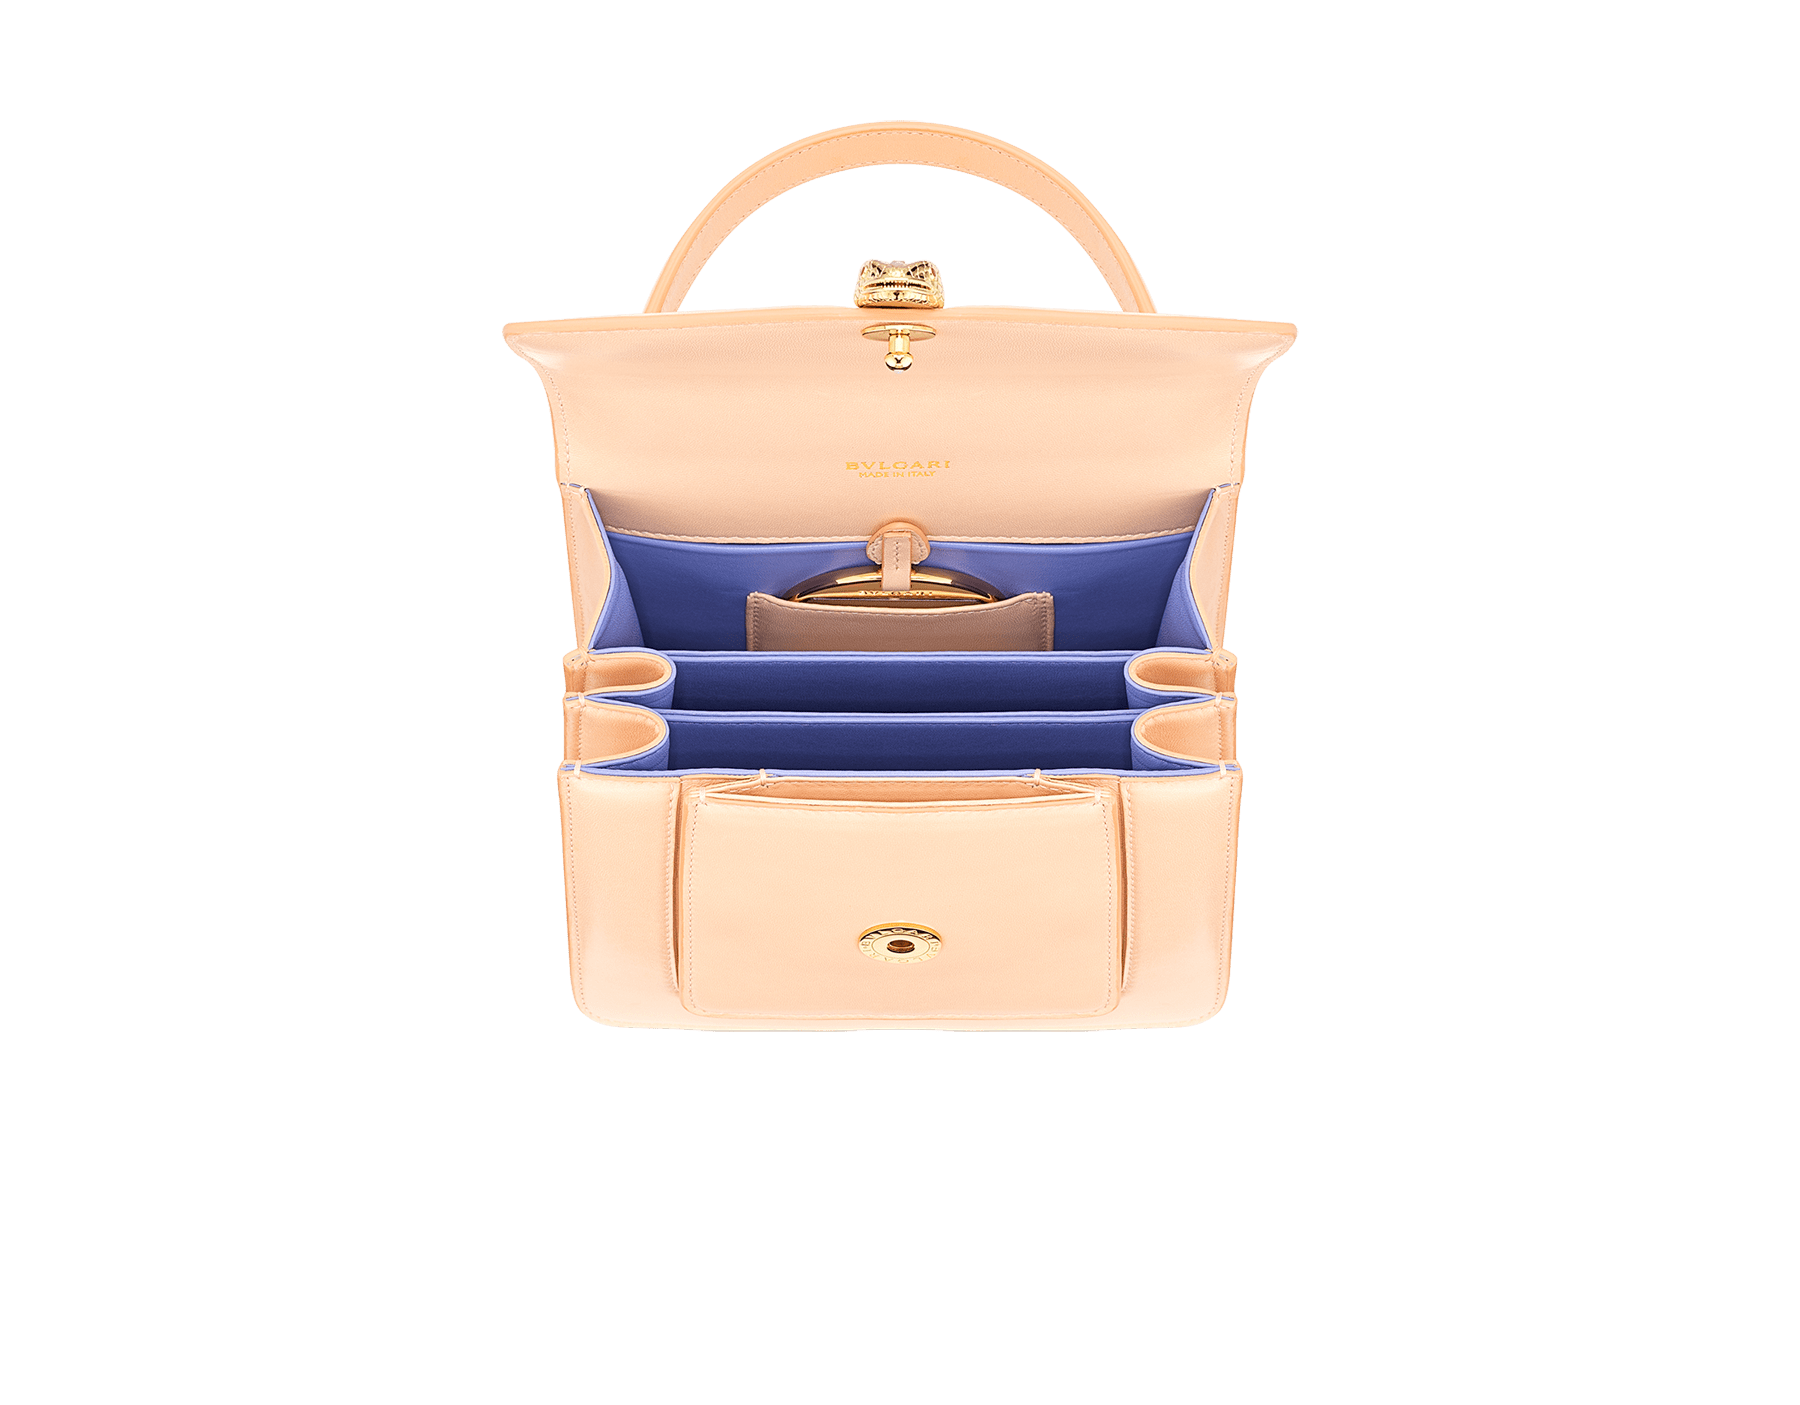 """""""Serpenti Forever"""" small maxi chain top handle bag in peach nappa leather, with Lavender Amethyst lilac nappa leather inner lining. New Serpenti head closure in gold-plated brass, finished with small pink mother-of-pearl scales in the middle and red enamel eyes. 1133-MCN image 4"""